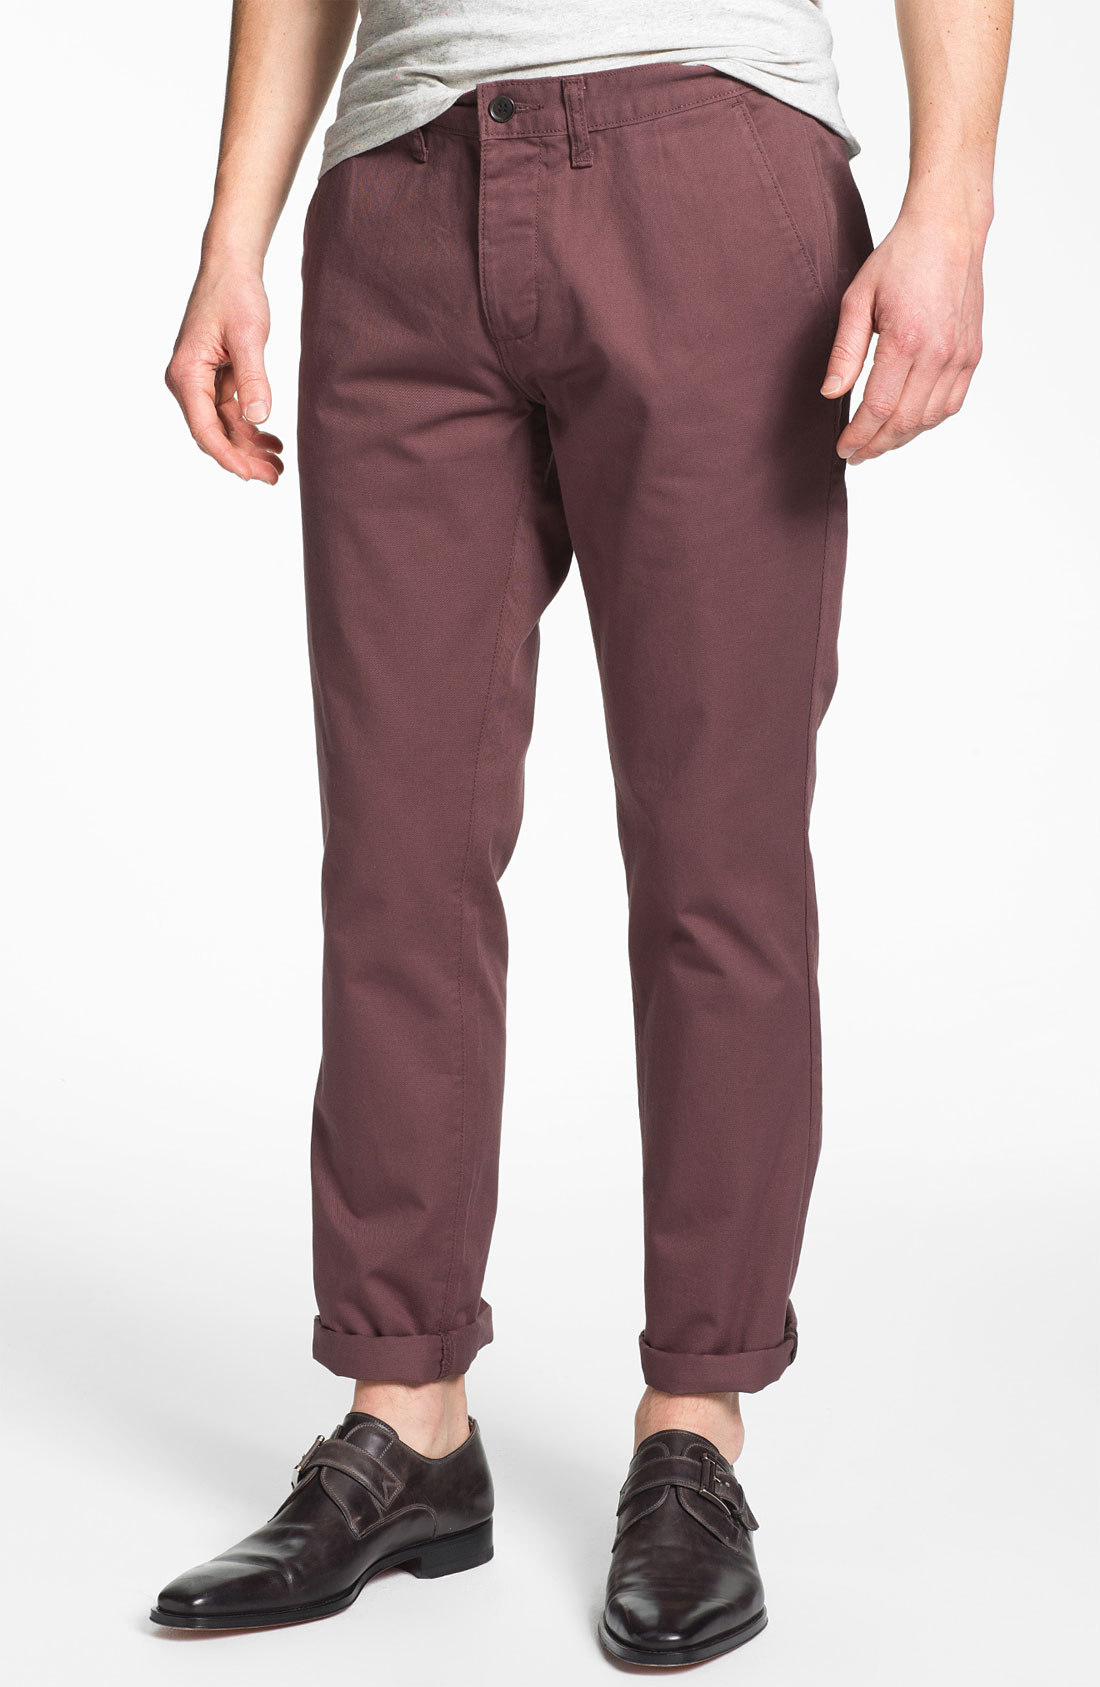 Shop for burgundy pants online at Target. Free shipping on purchases over $35 and save 5% every day with your Target REDcard.